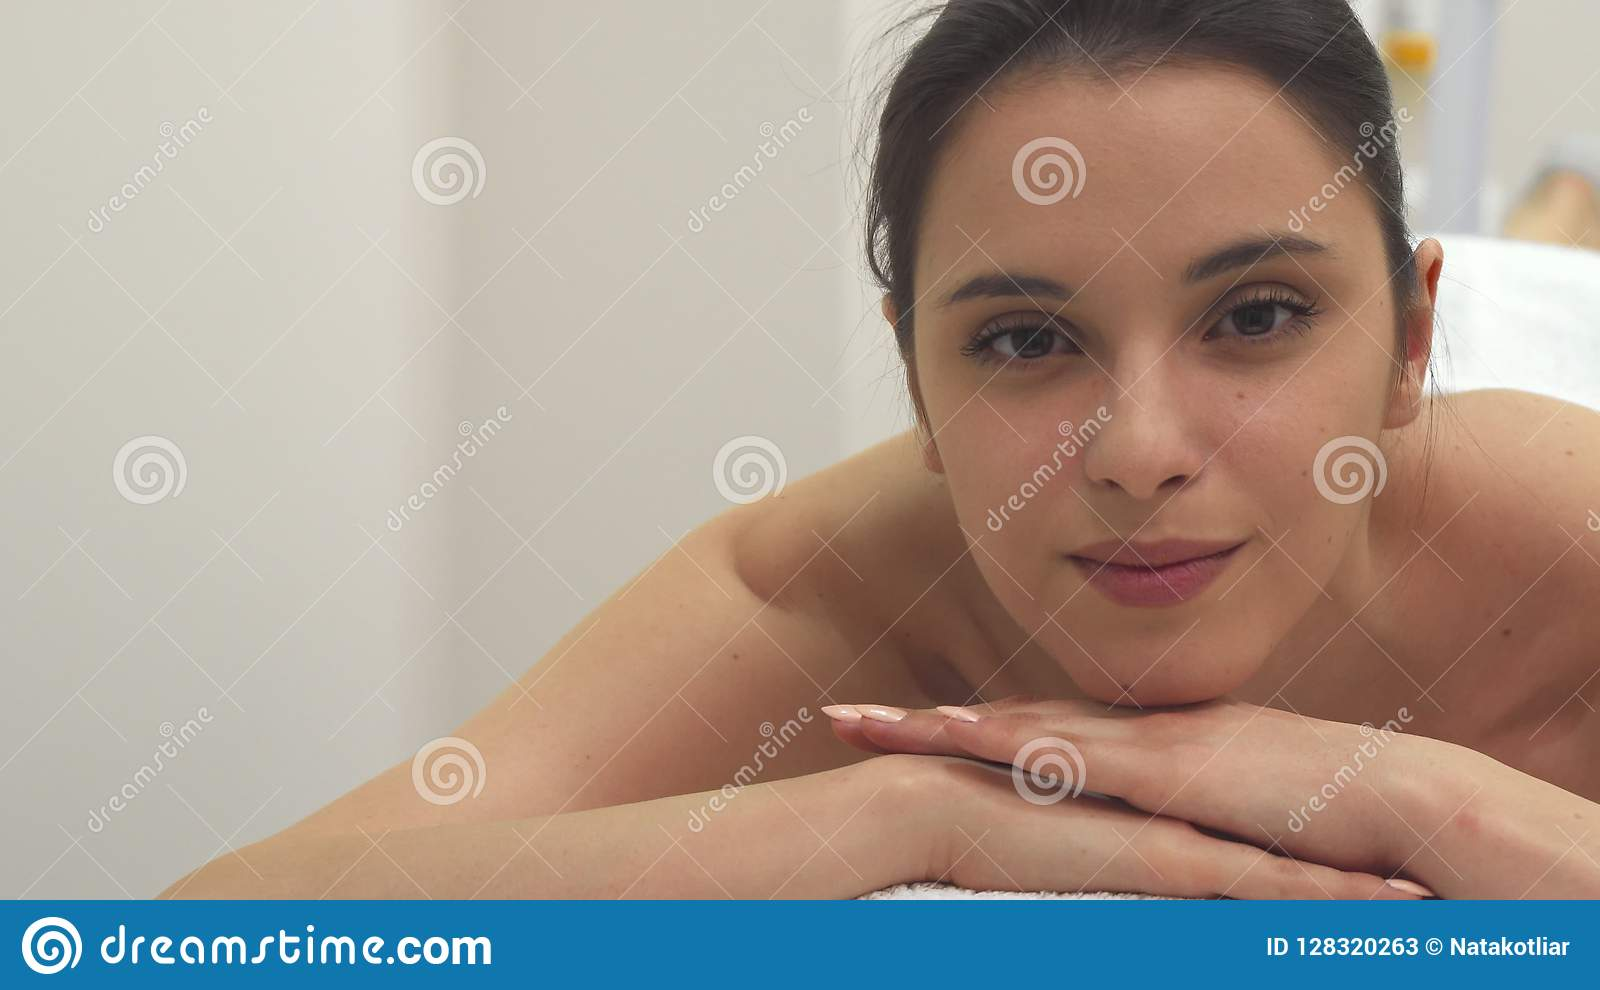 Girl relaxes on the massage table